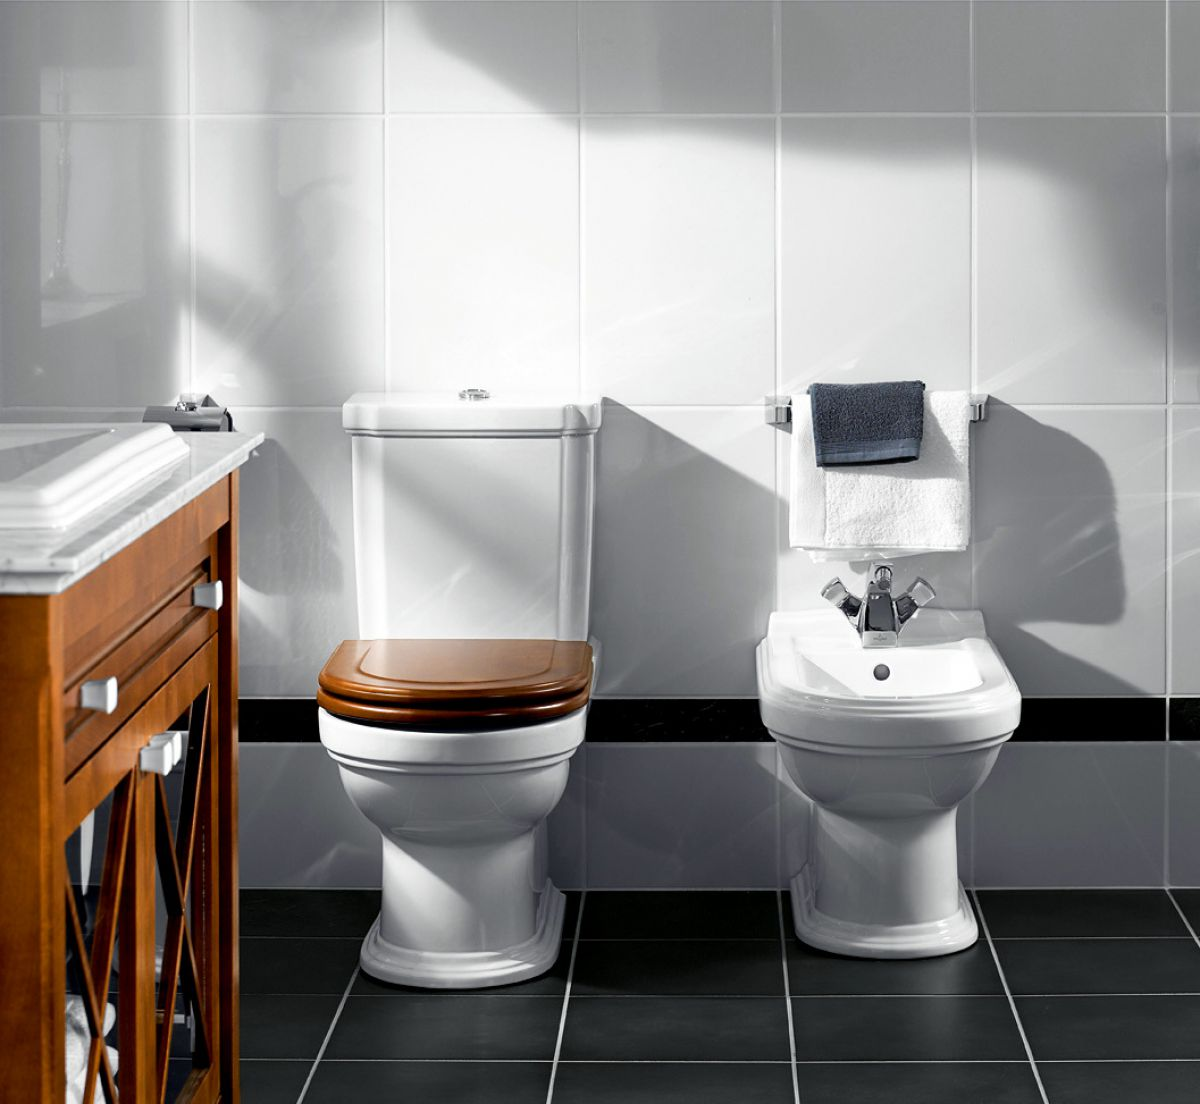 villeroy boch hommage floor standing bidet uk bathrooms. Black Bedroom Furniture Sets. Home Design Ideas